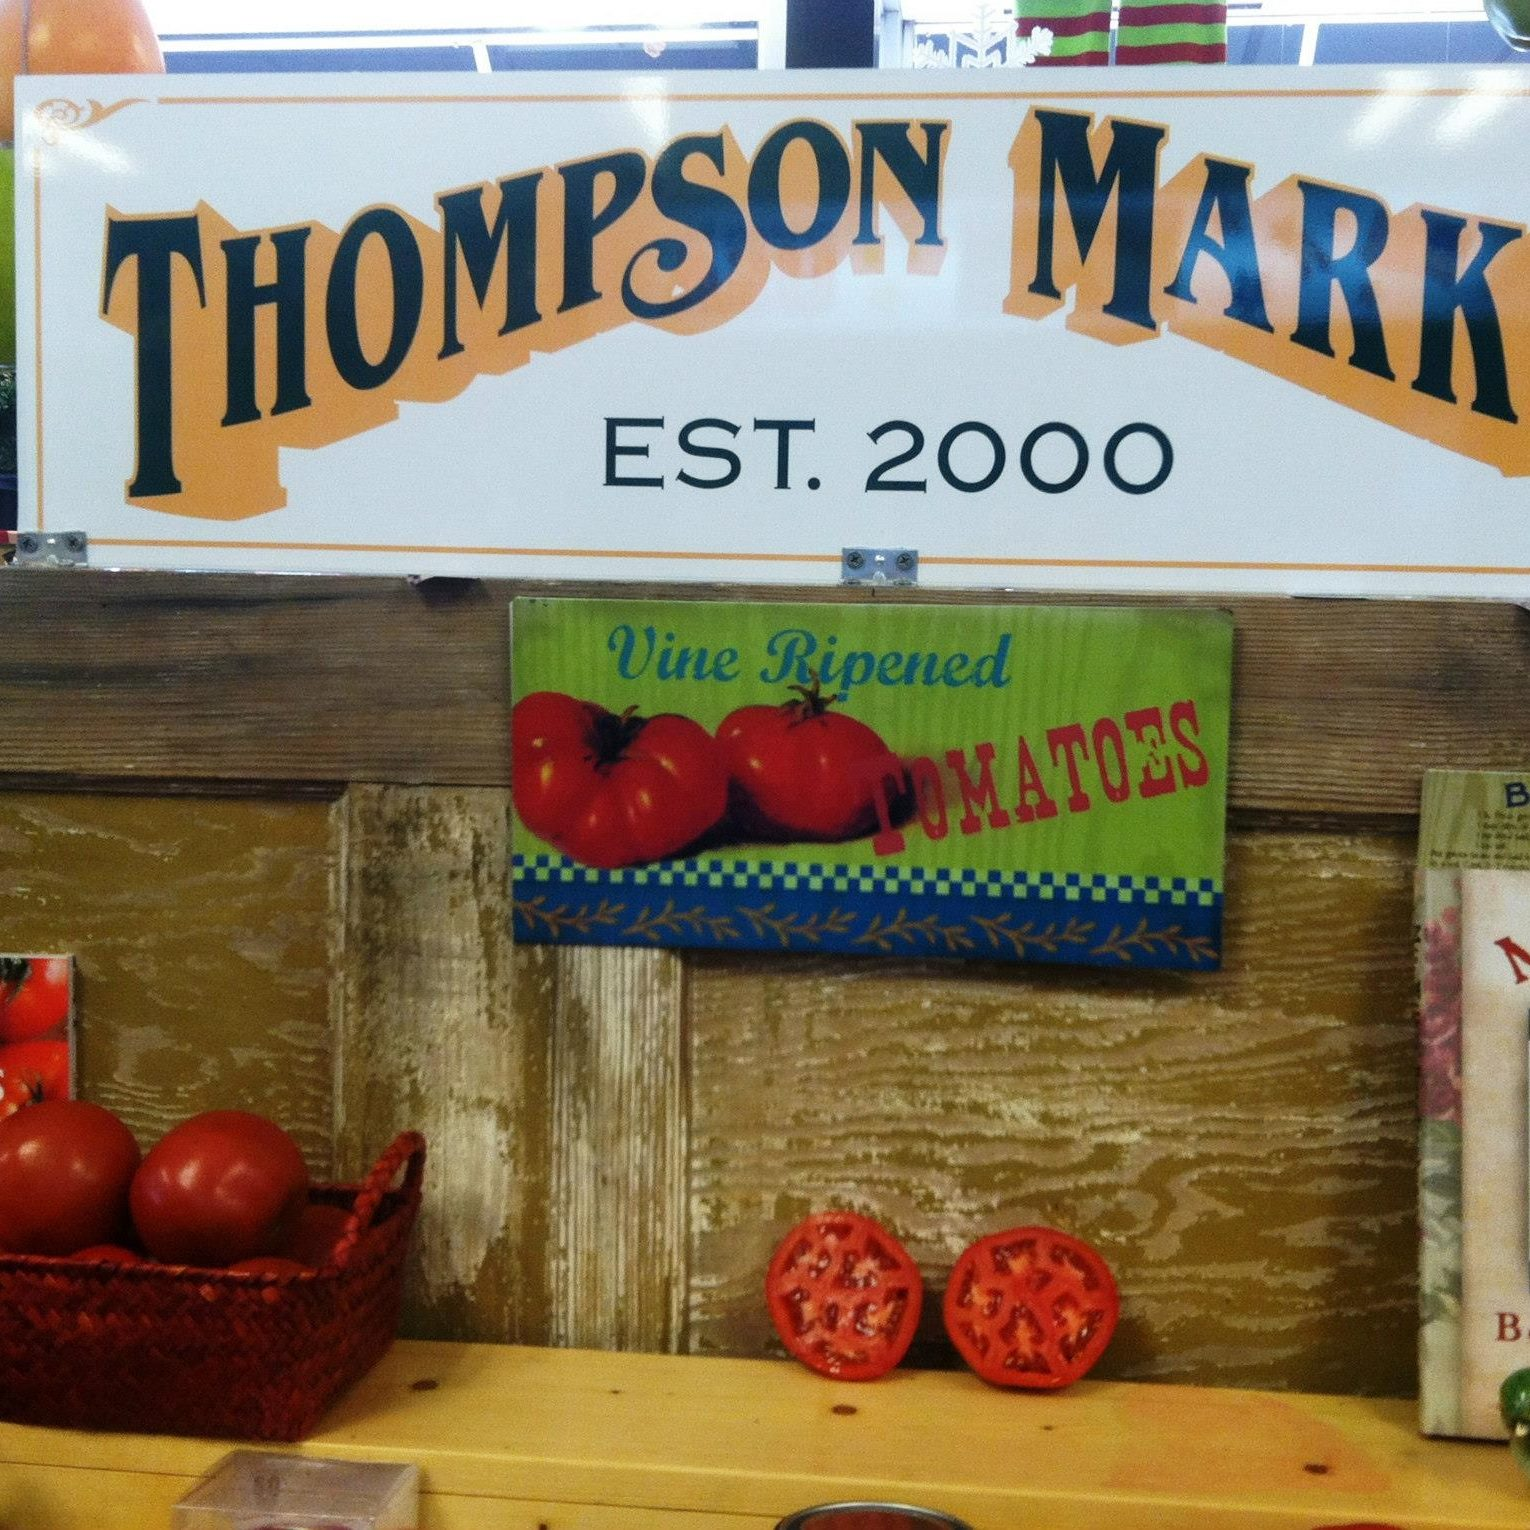 Thompson Market